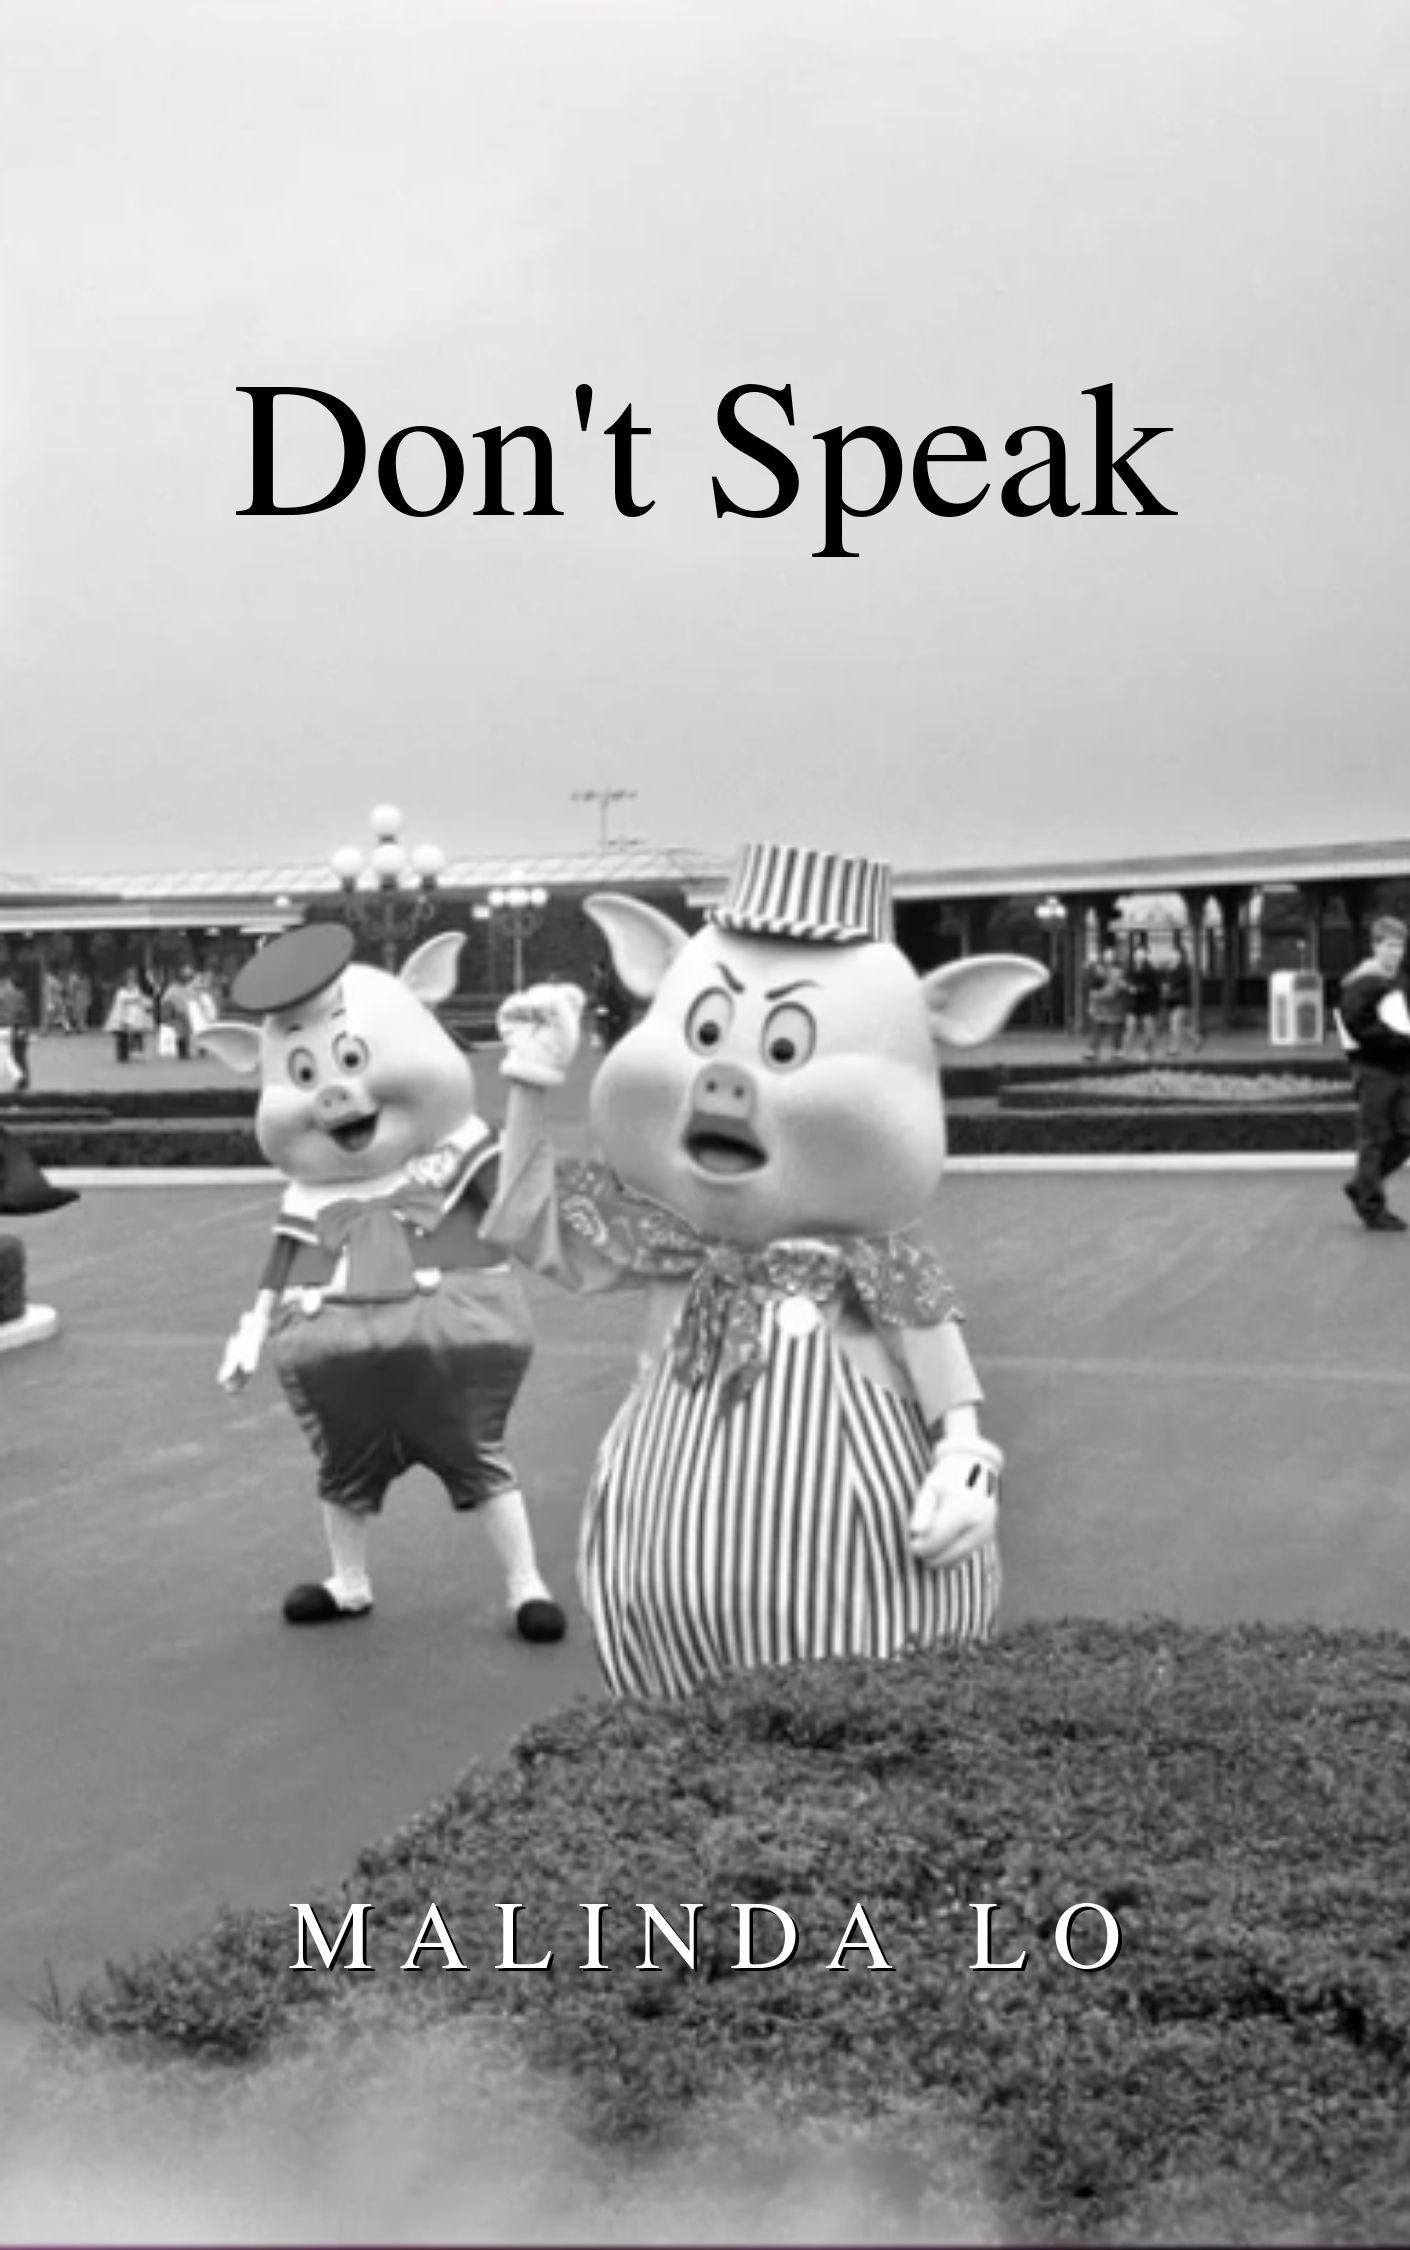 Copy of Don't Speak